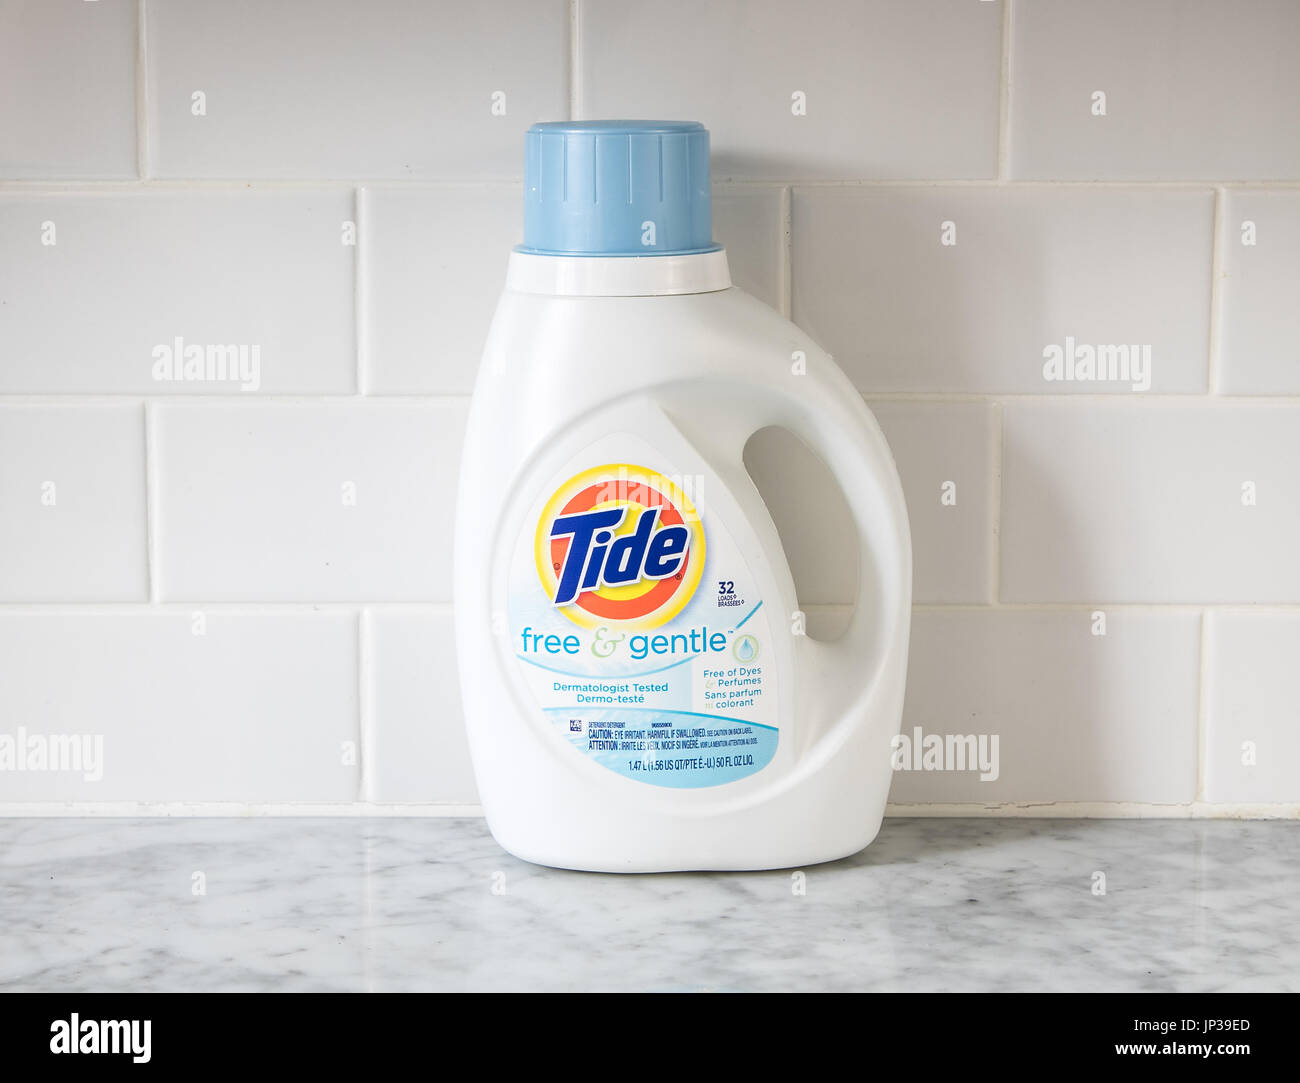 michael porter s framework of tide detergent Michael porter's model for generic competitive strategies focuses on like tide laundry detergent  sony's generic strategy & intensive growth strategies.